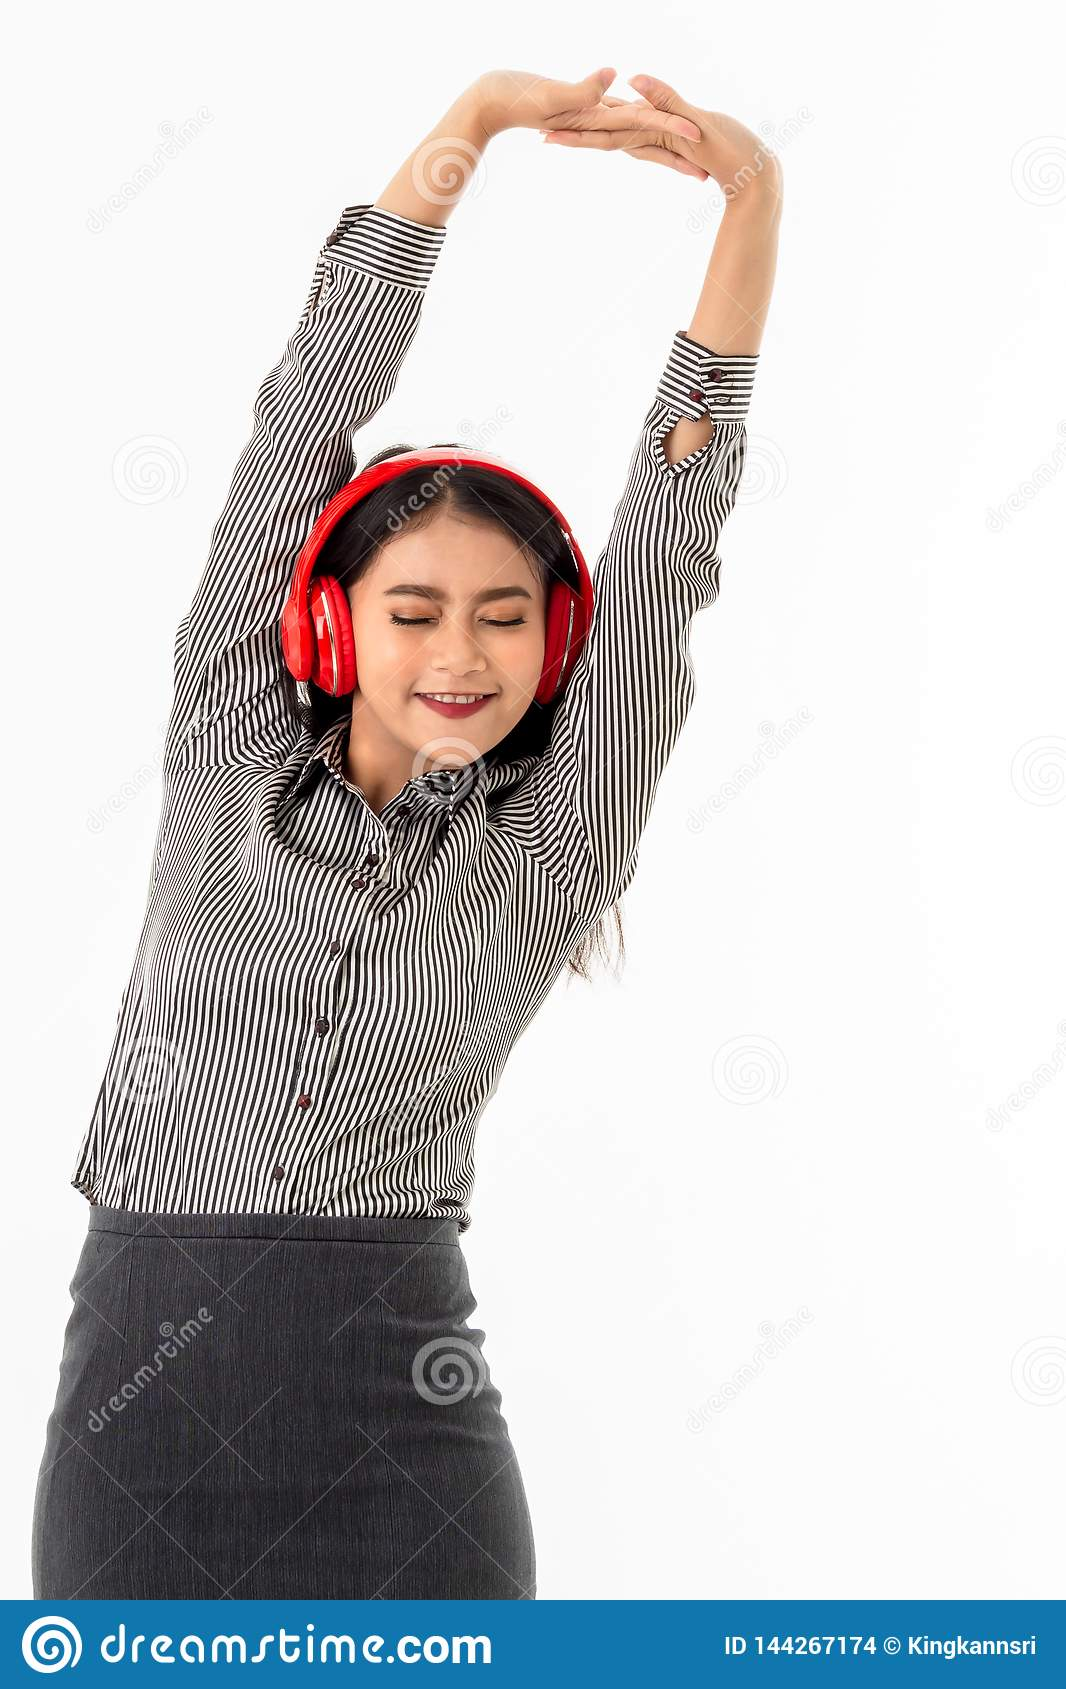 Asian young lady wearing red headphones stretching her arms above her head